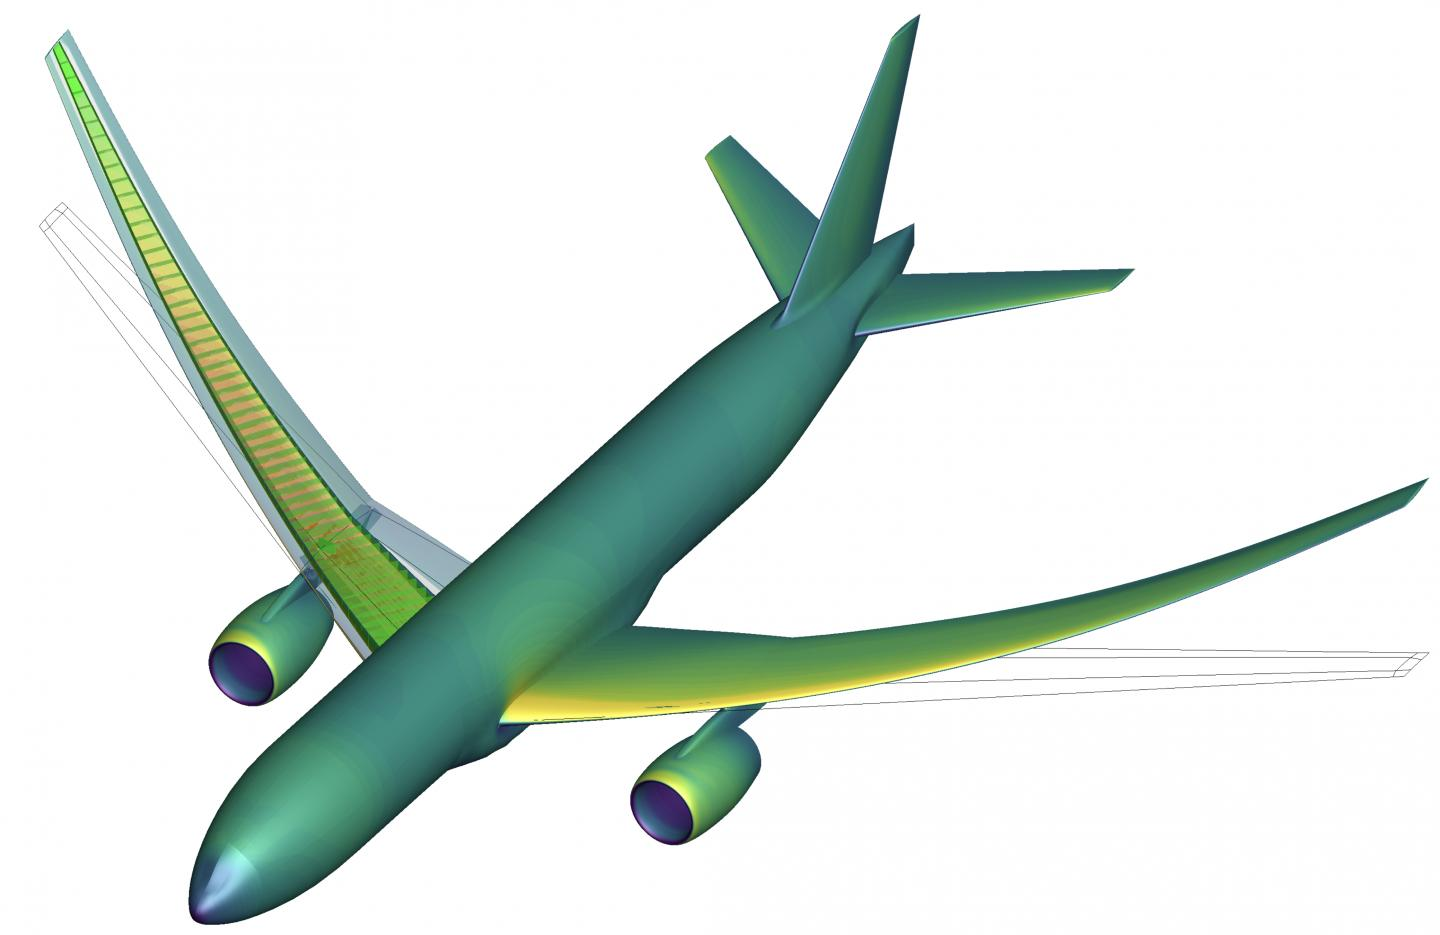 Designing The Fuel Efficient Aircraft Of The Future